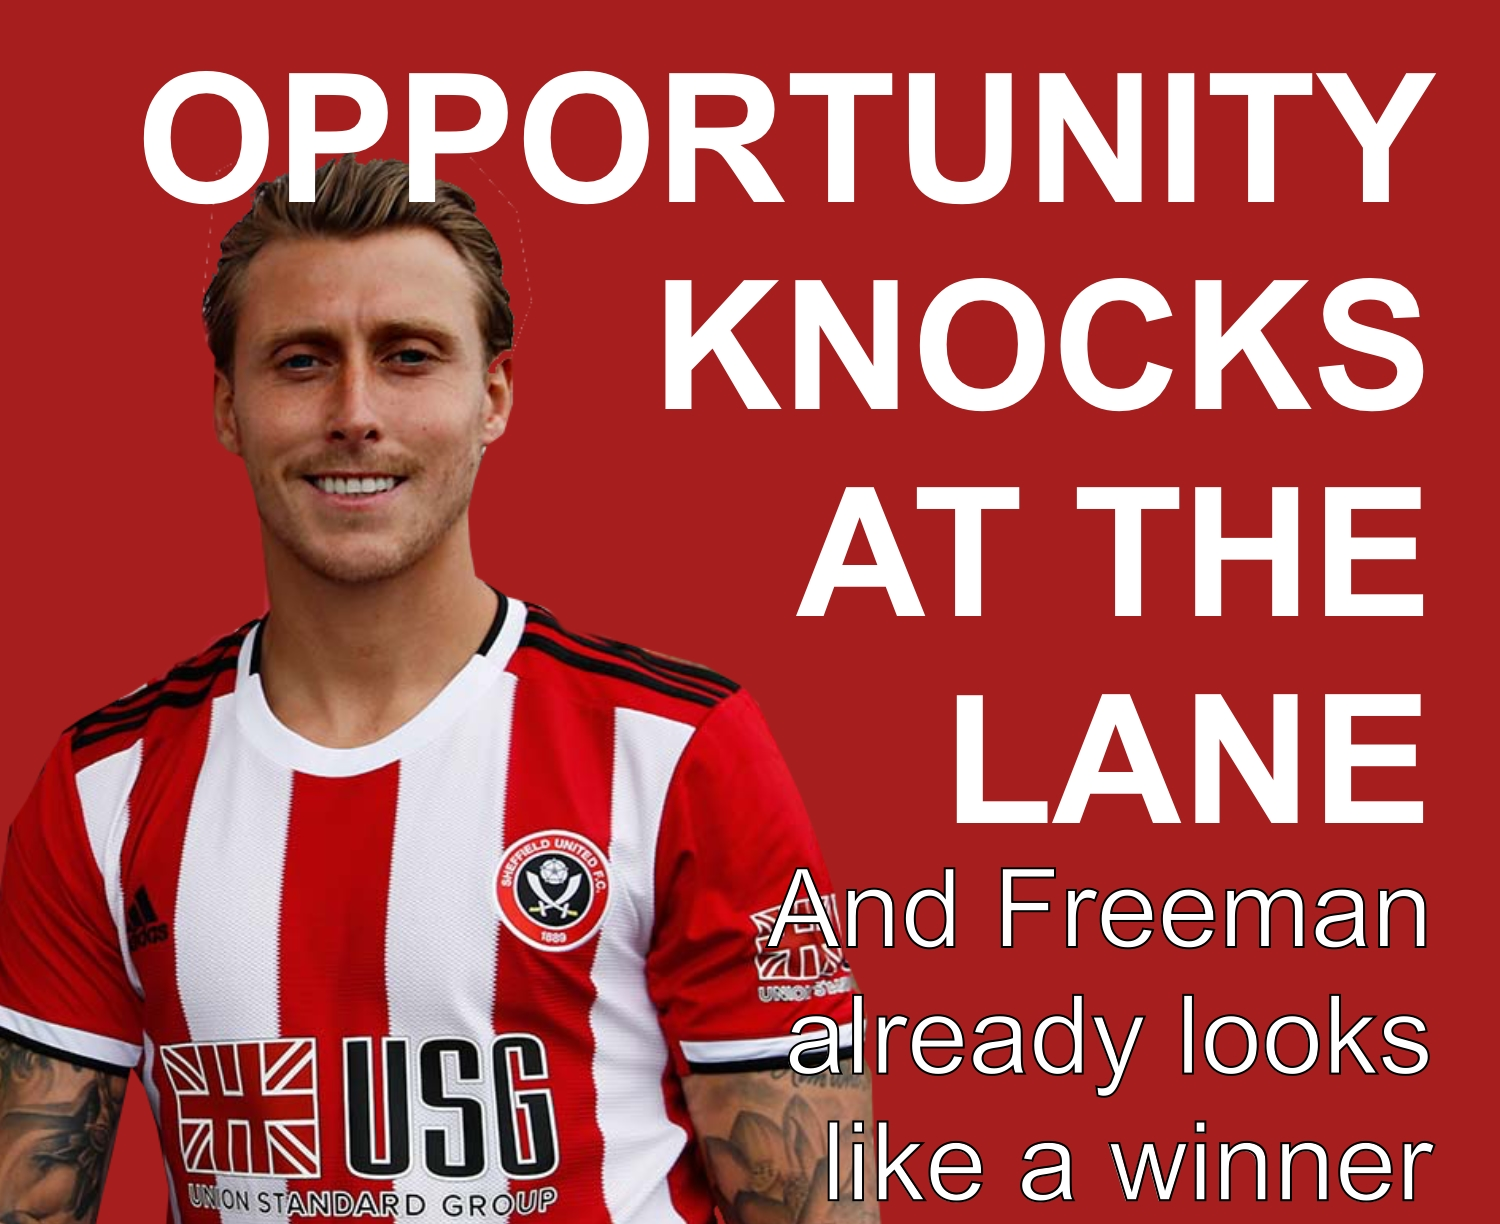 Opportunity knocks for Sheffield United as early fixture schedule deals Blades good hand at Bramall Lane